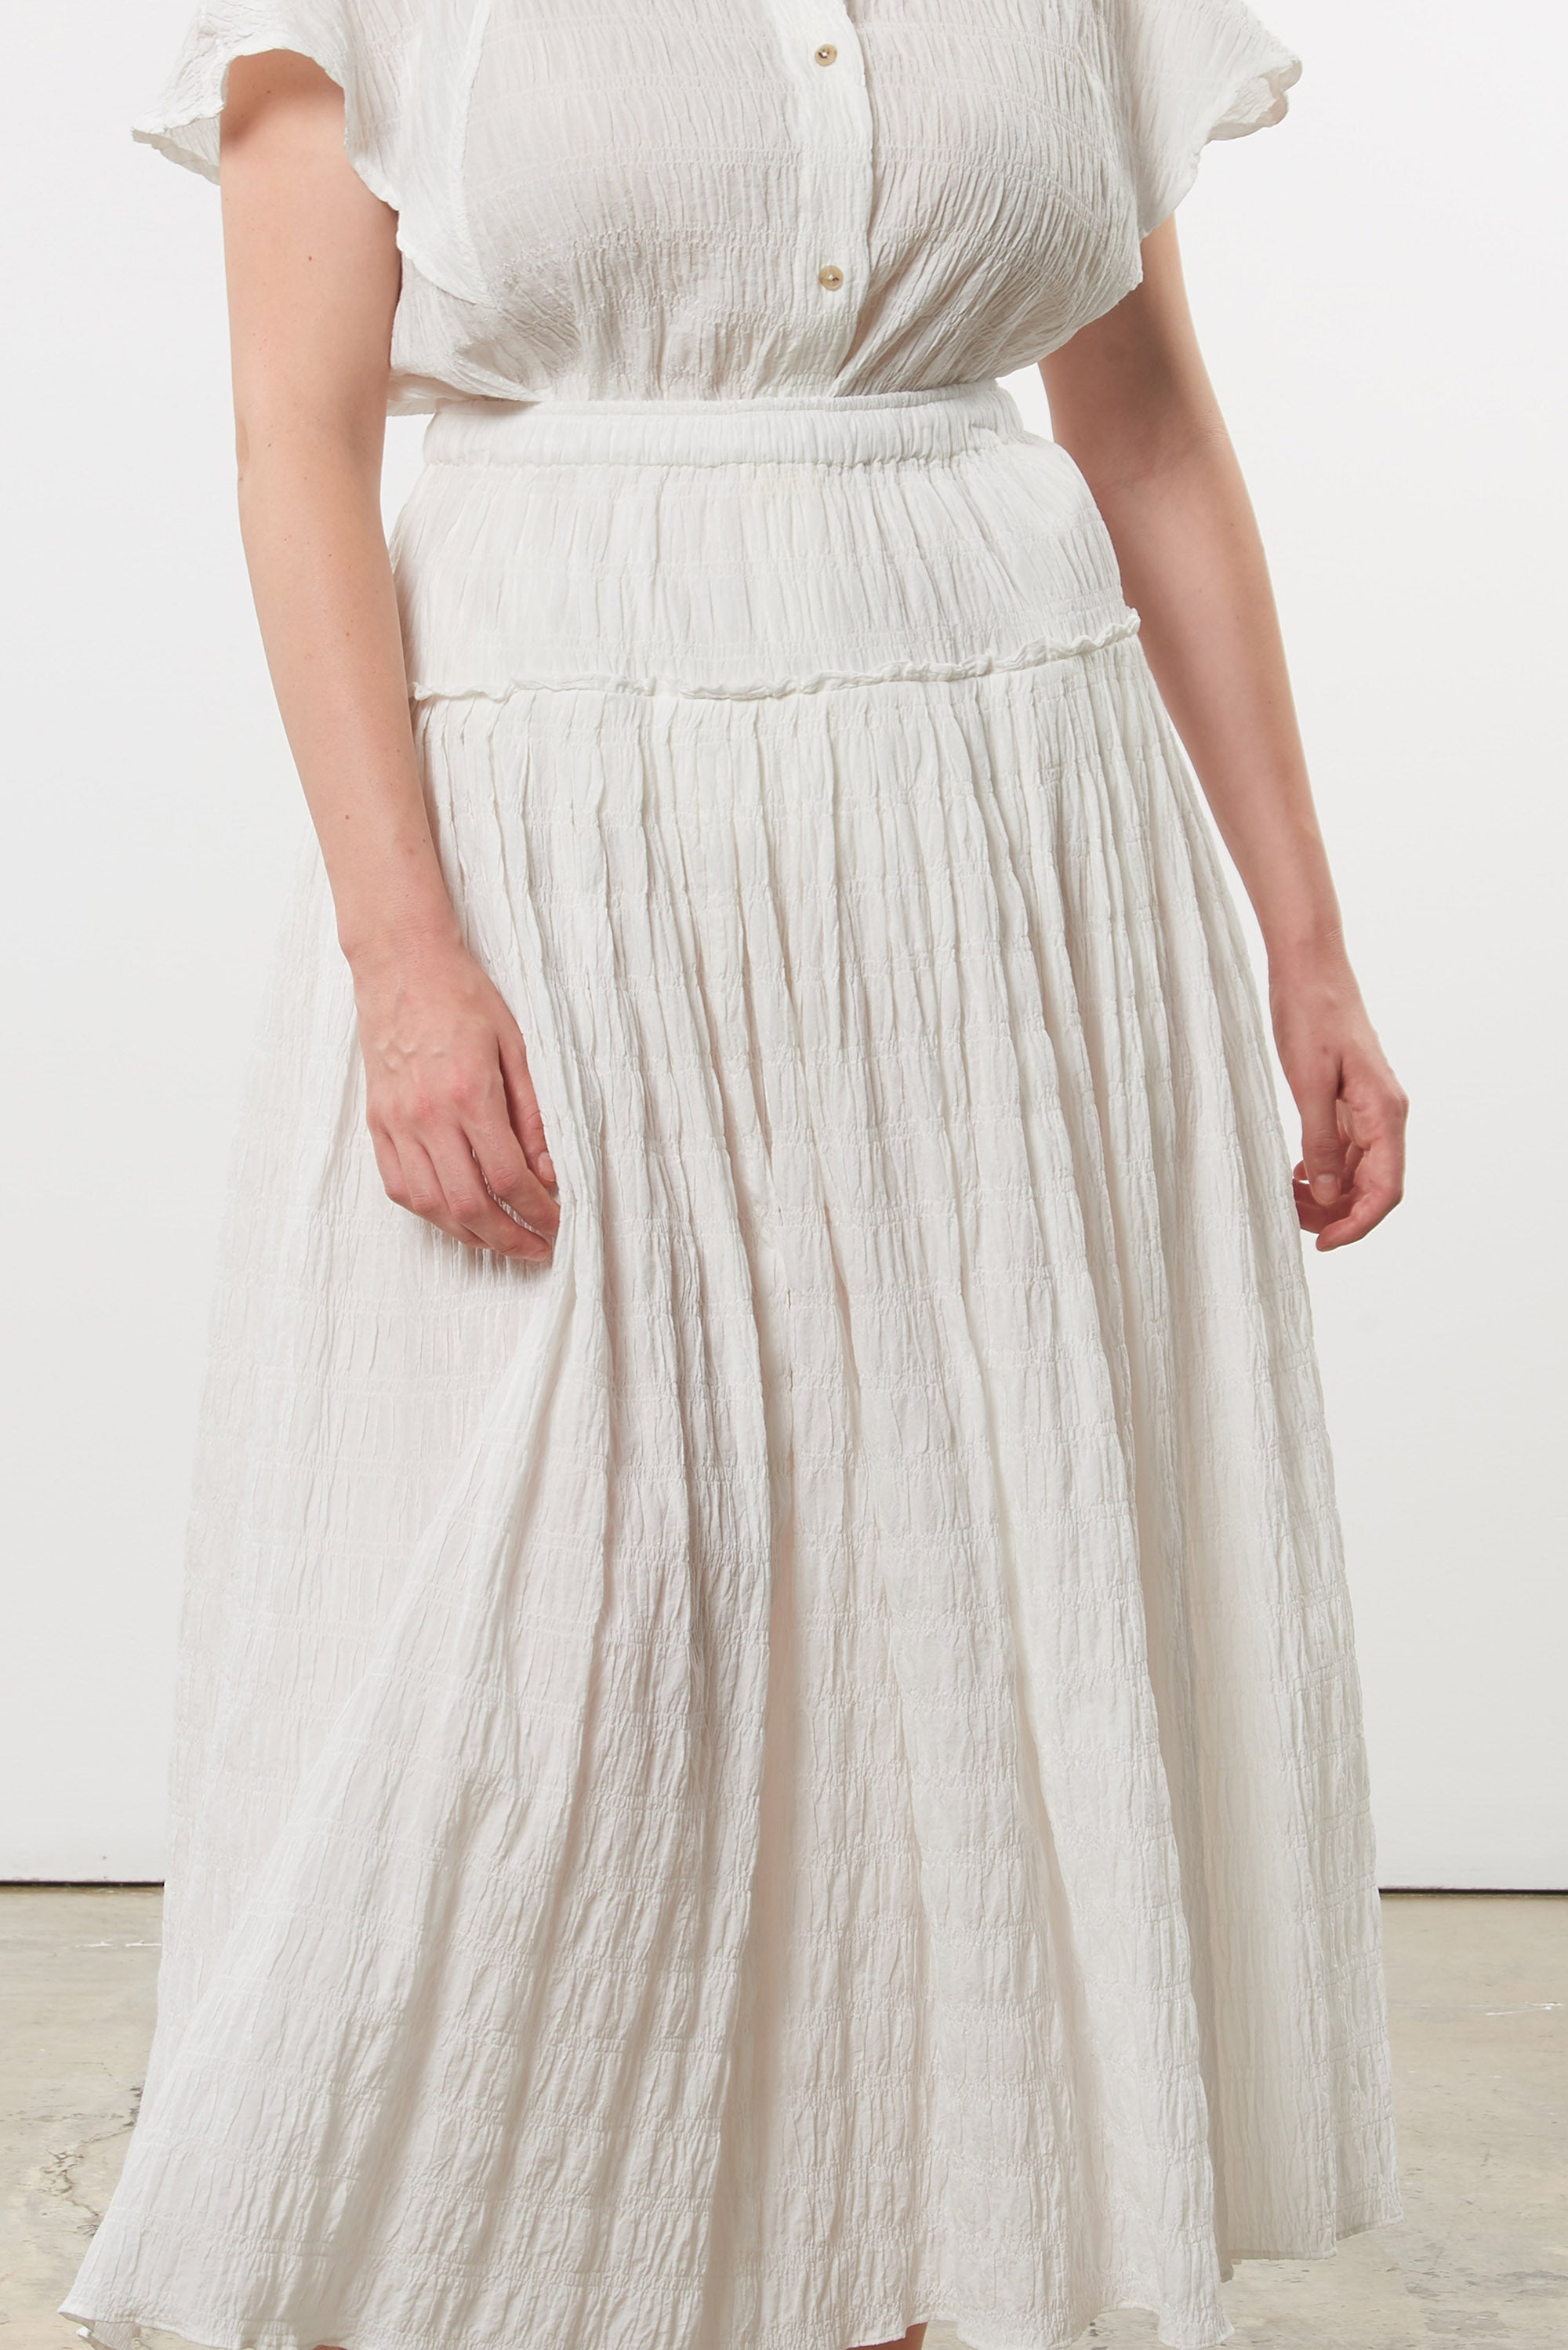 Mara Hoffman Extended White Alejandra Skirt in organic cotton (detail)